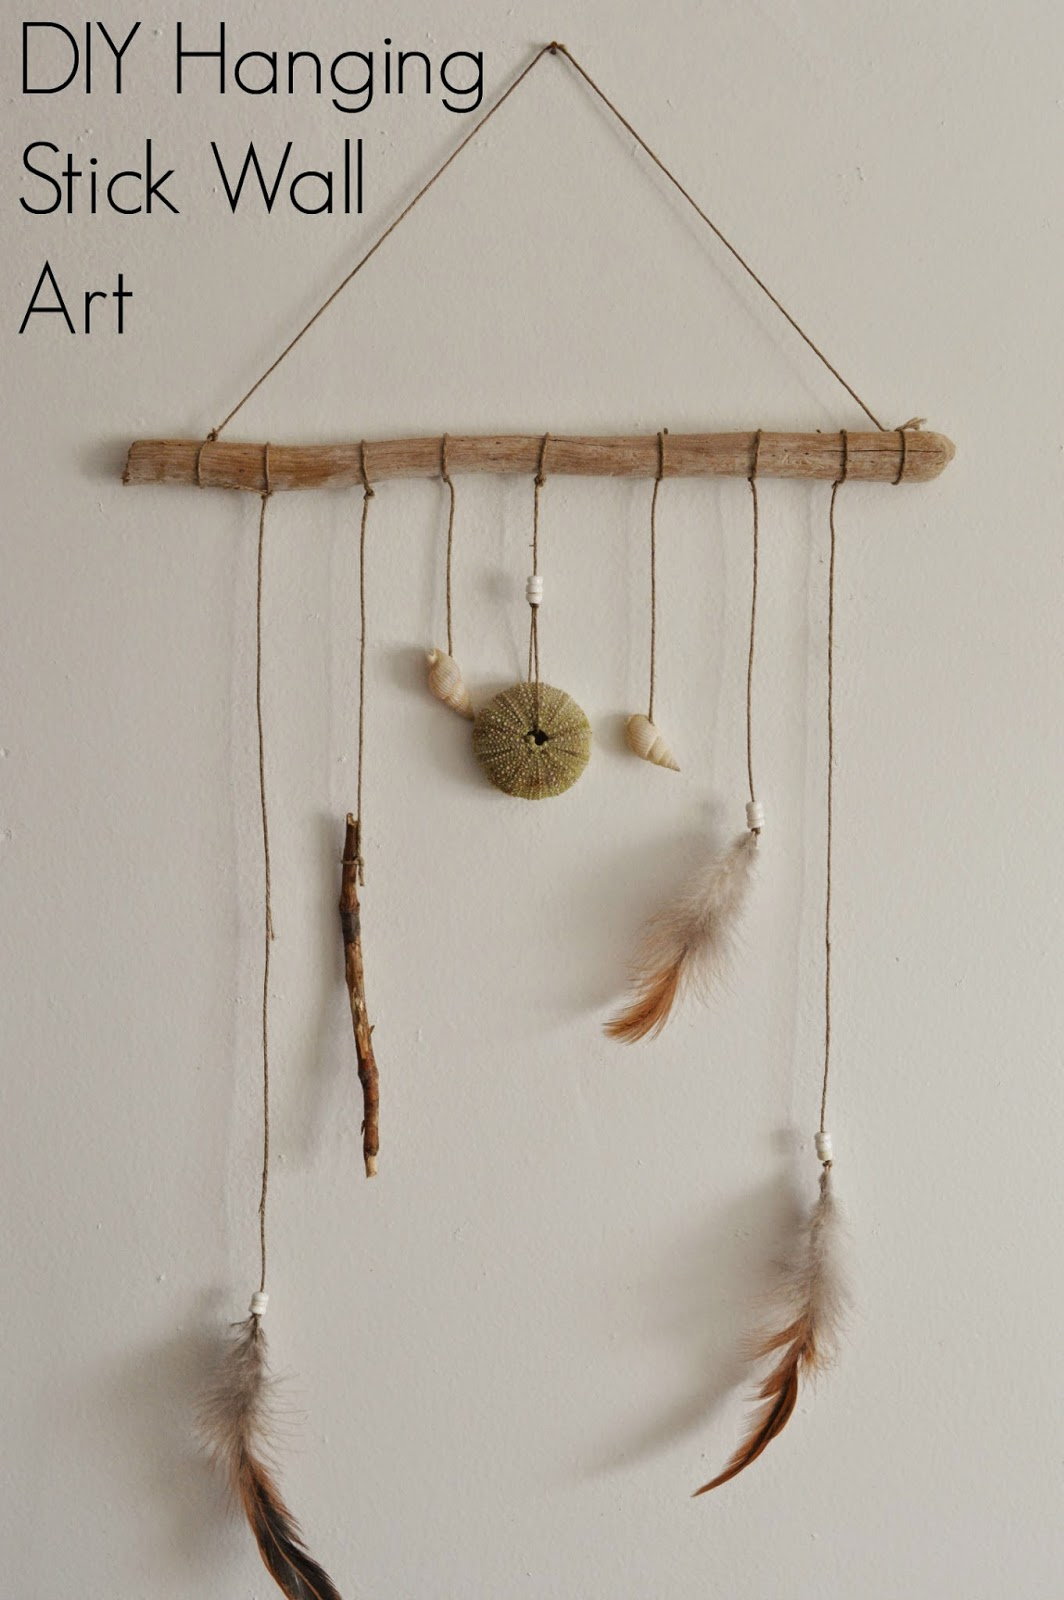 DIY Hanging Stick Wall Art